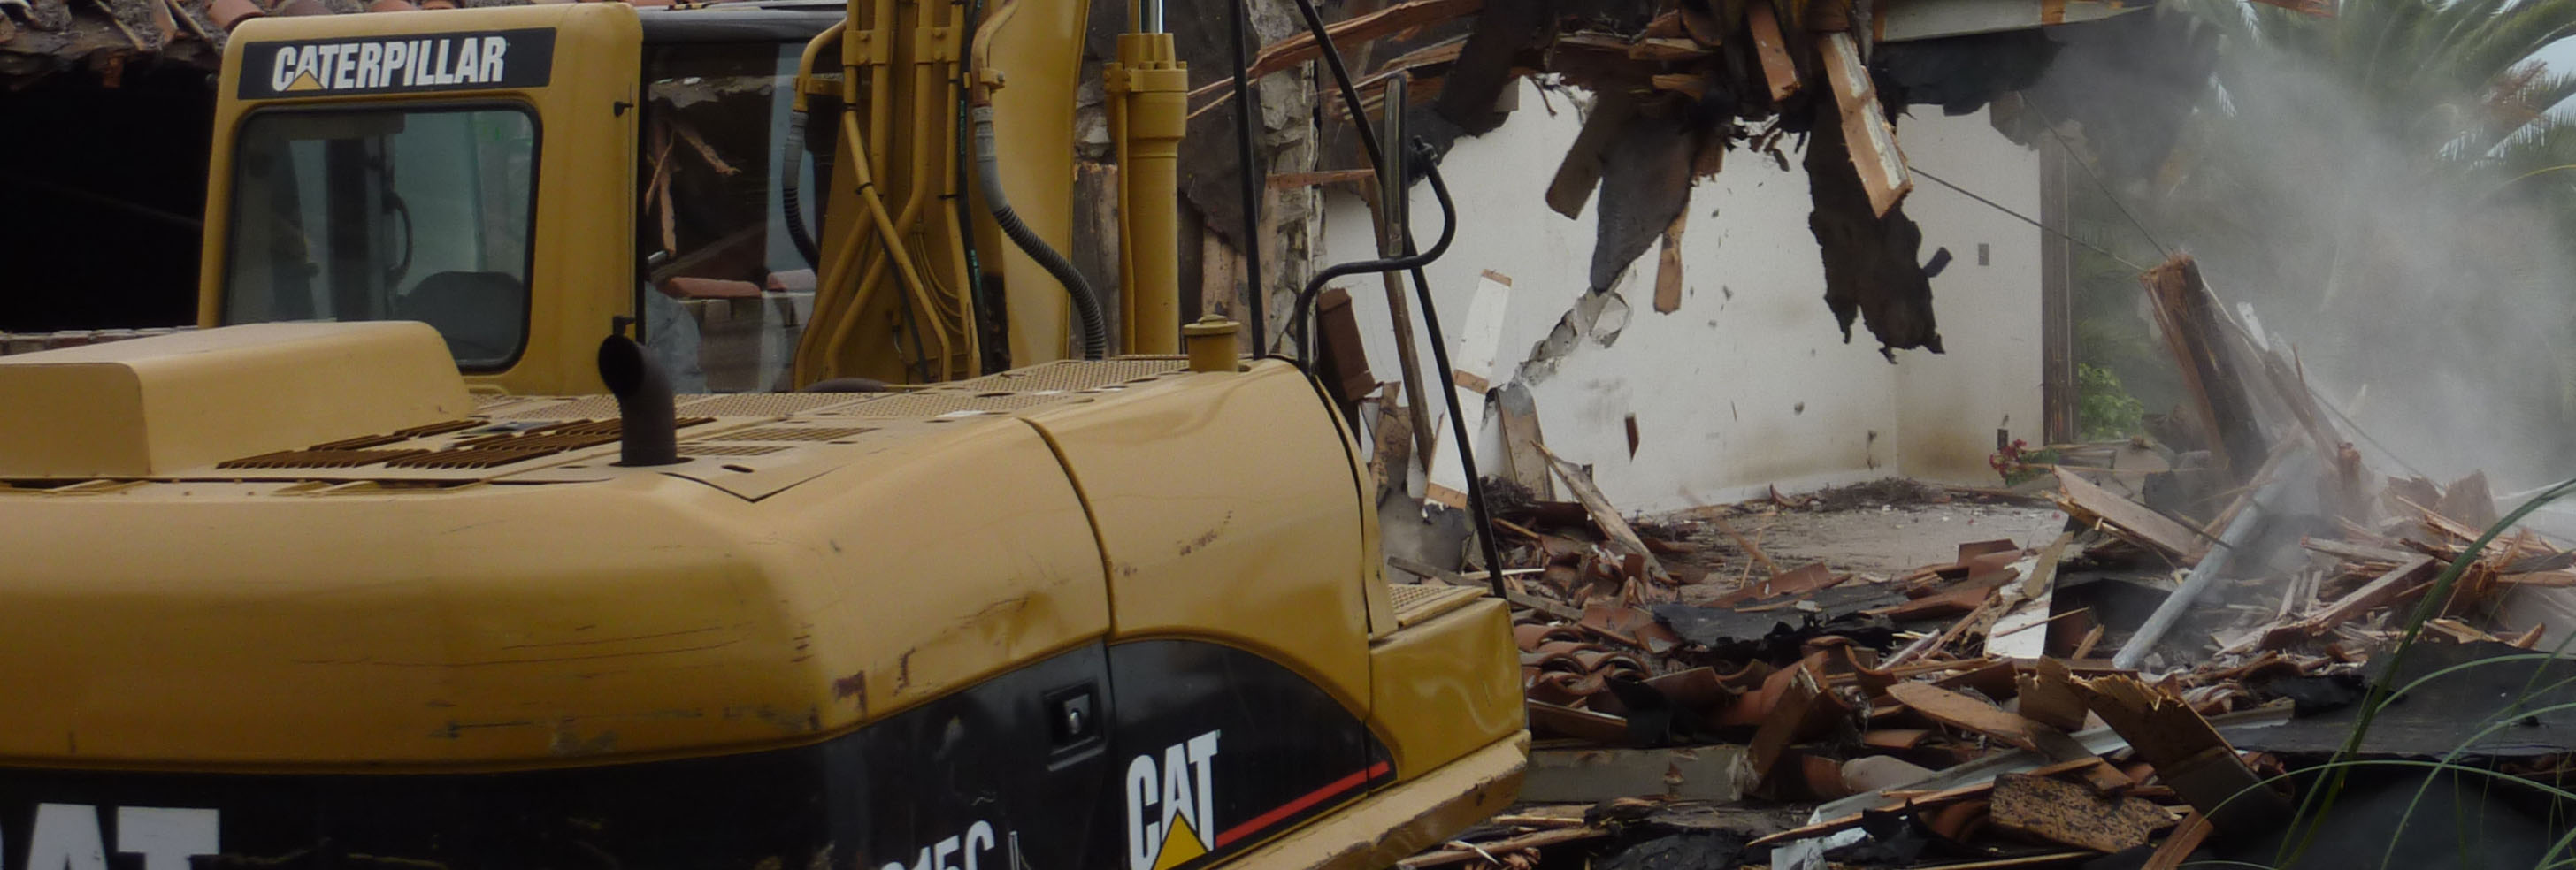 construction injuries lawsuit